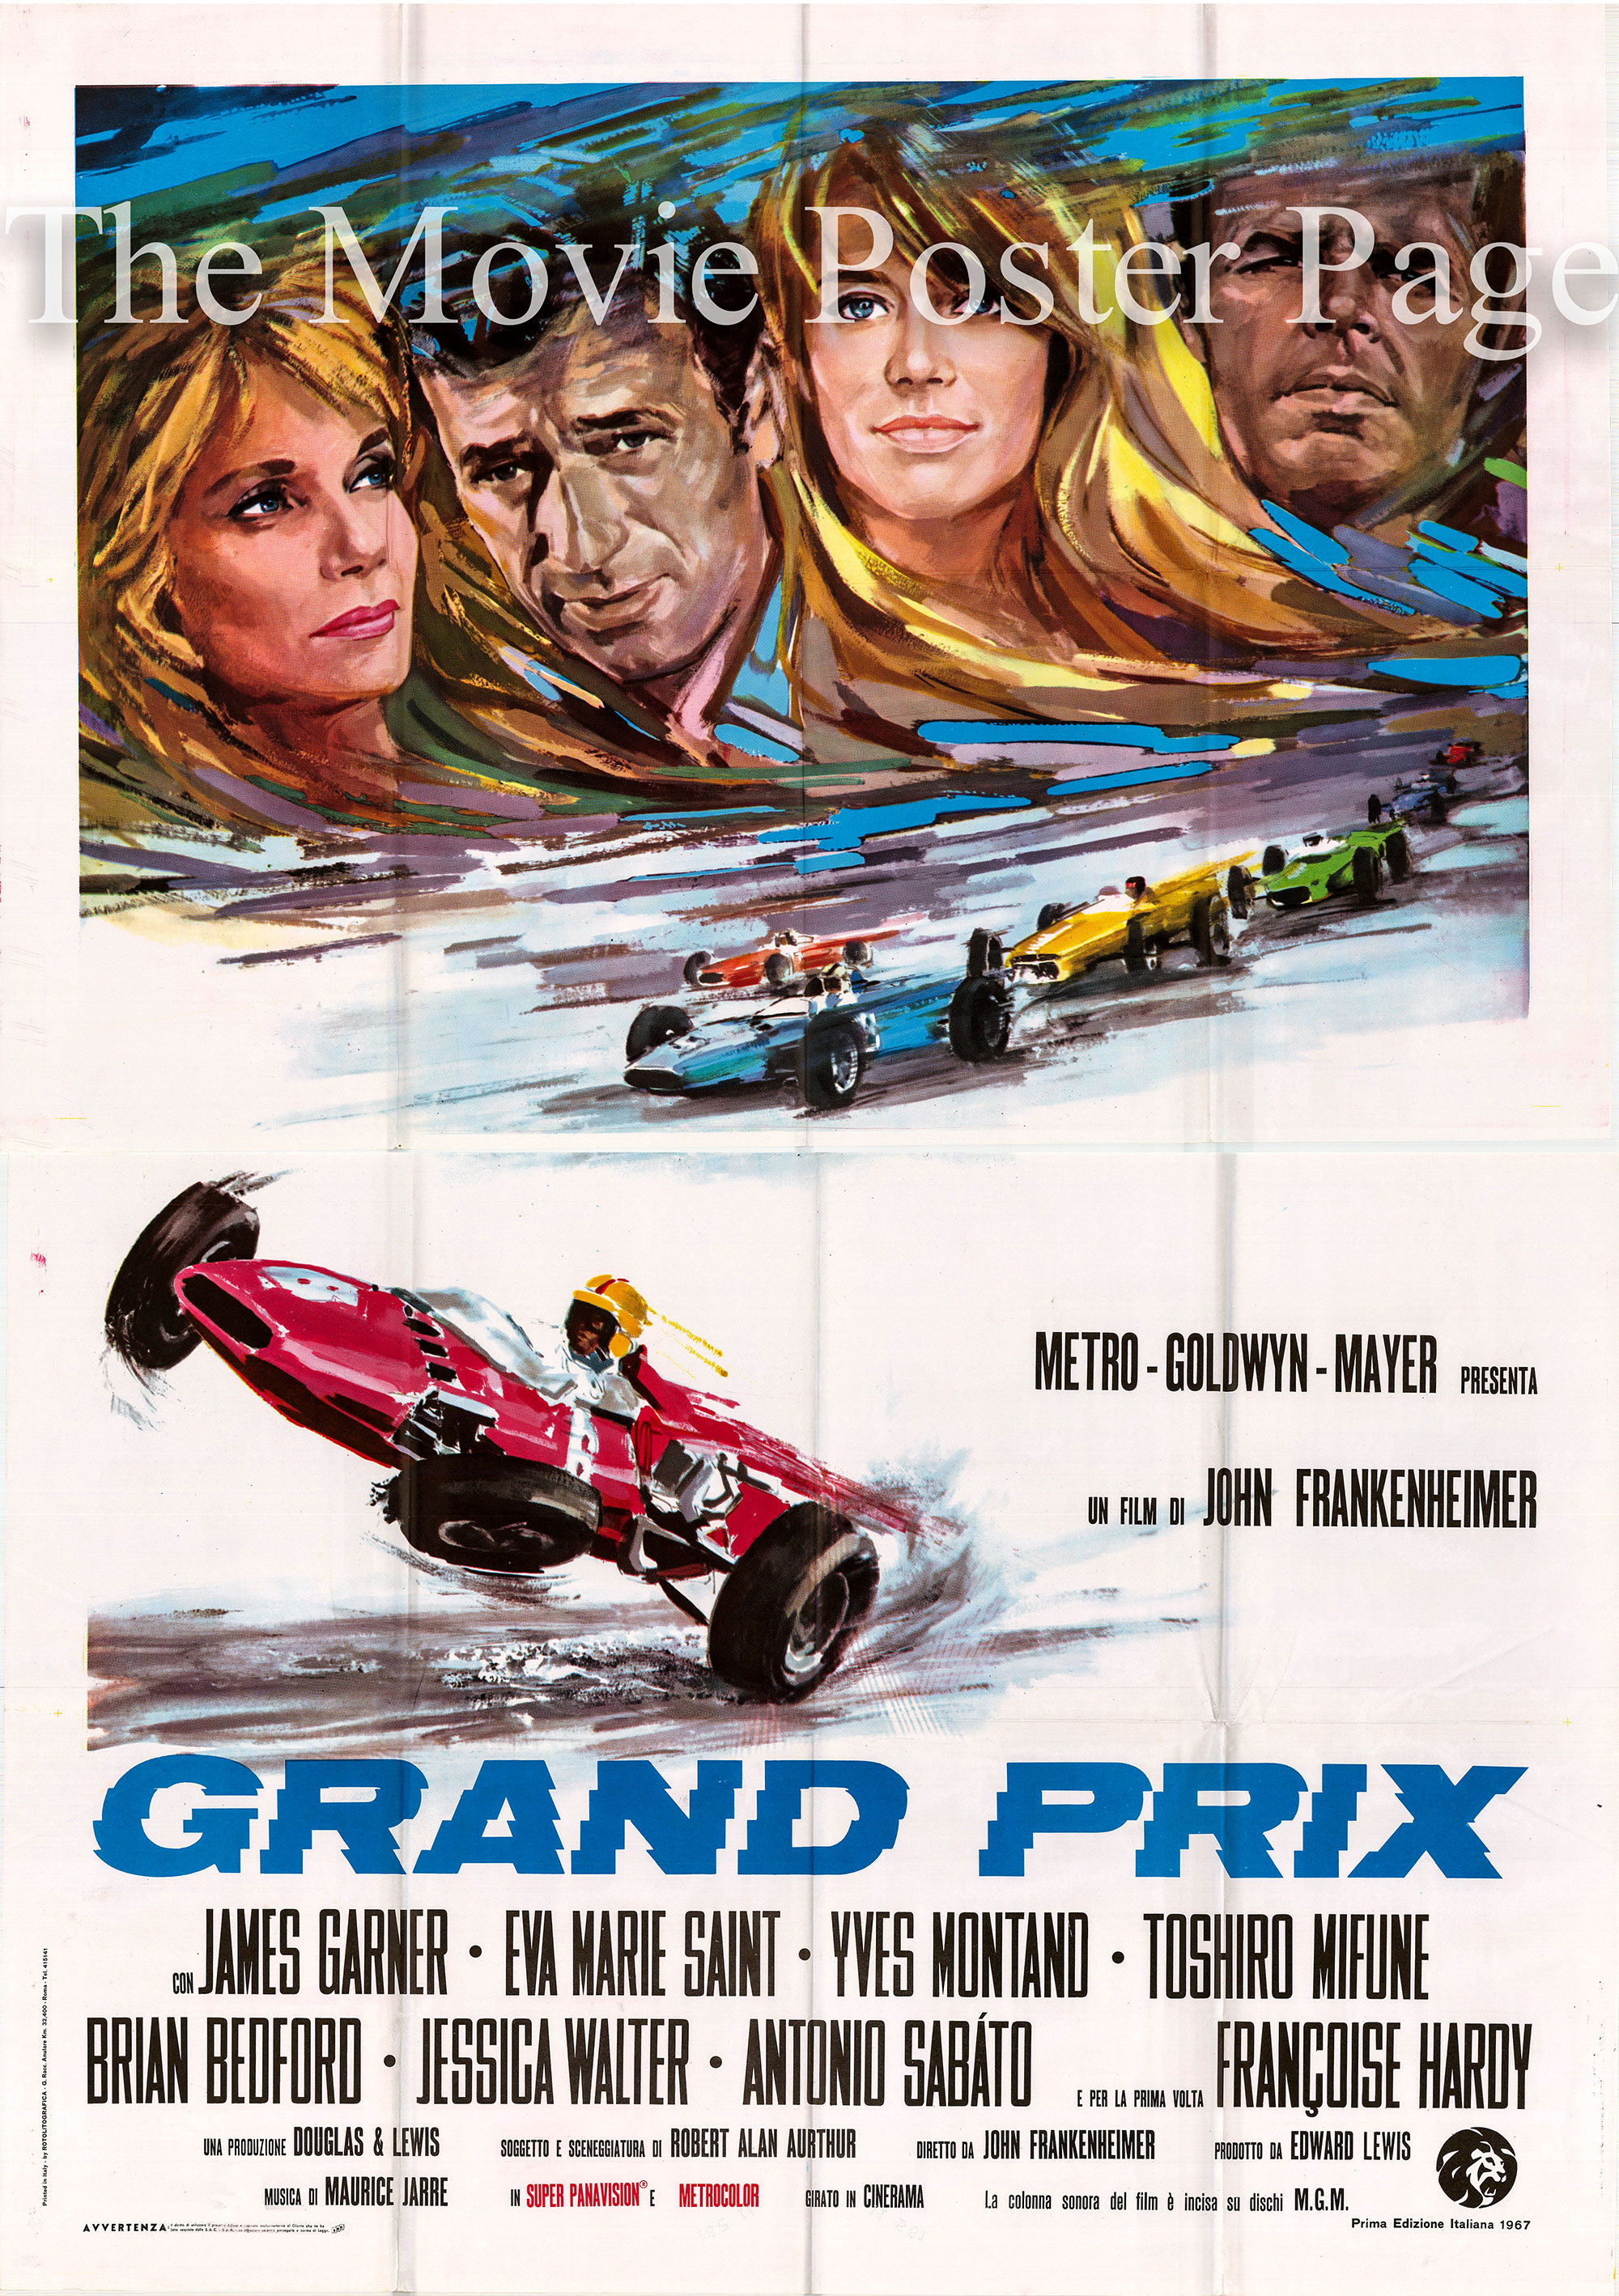 Pictured is an Italian four-sheet promotional poster for the 1967 John Frankenheimer film Grand Prix starring James Garner as Pete Aron.